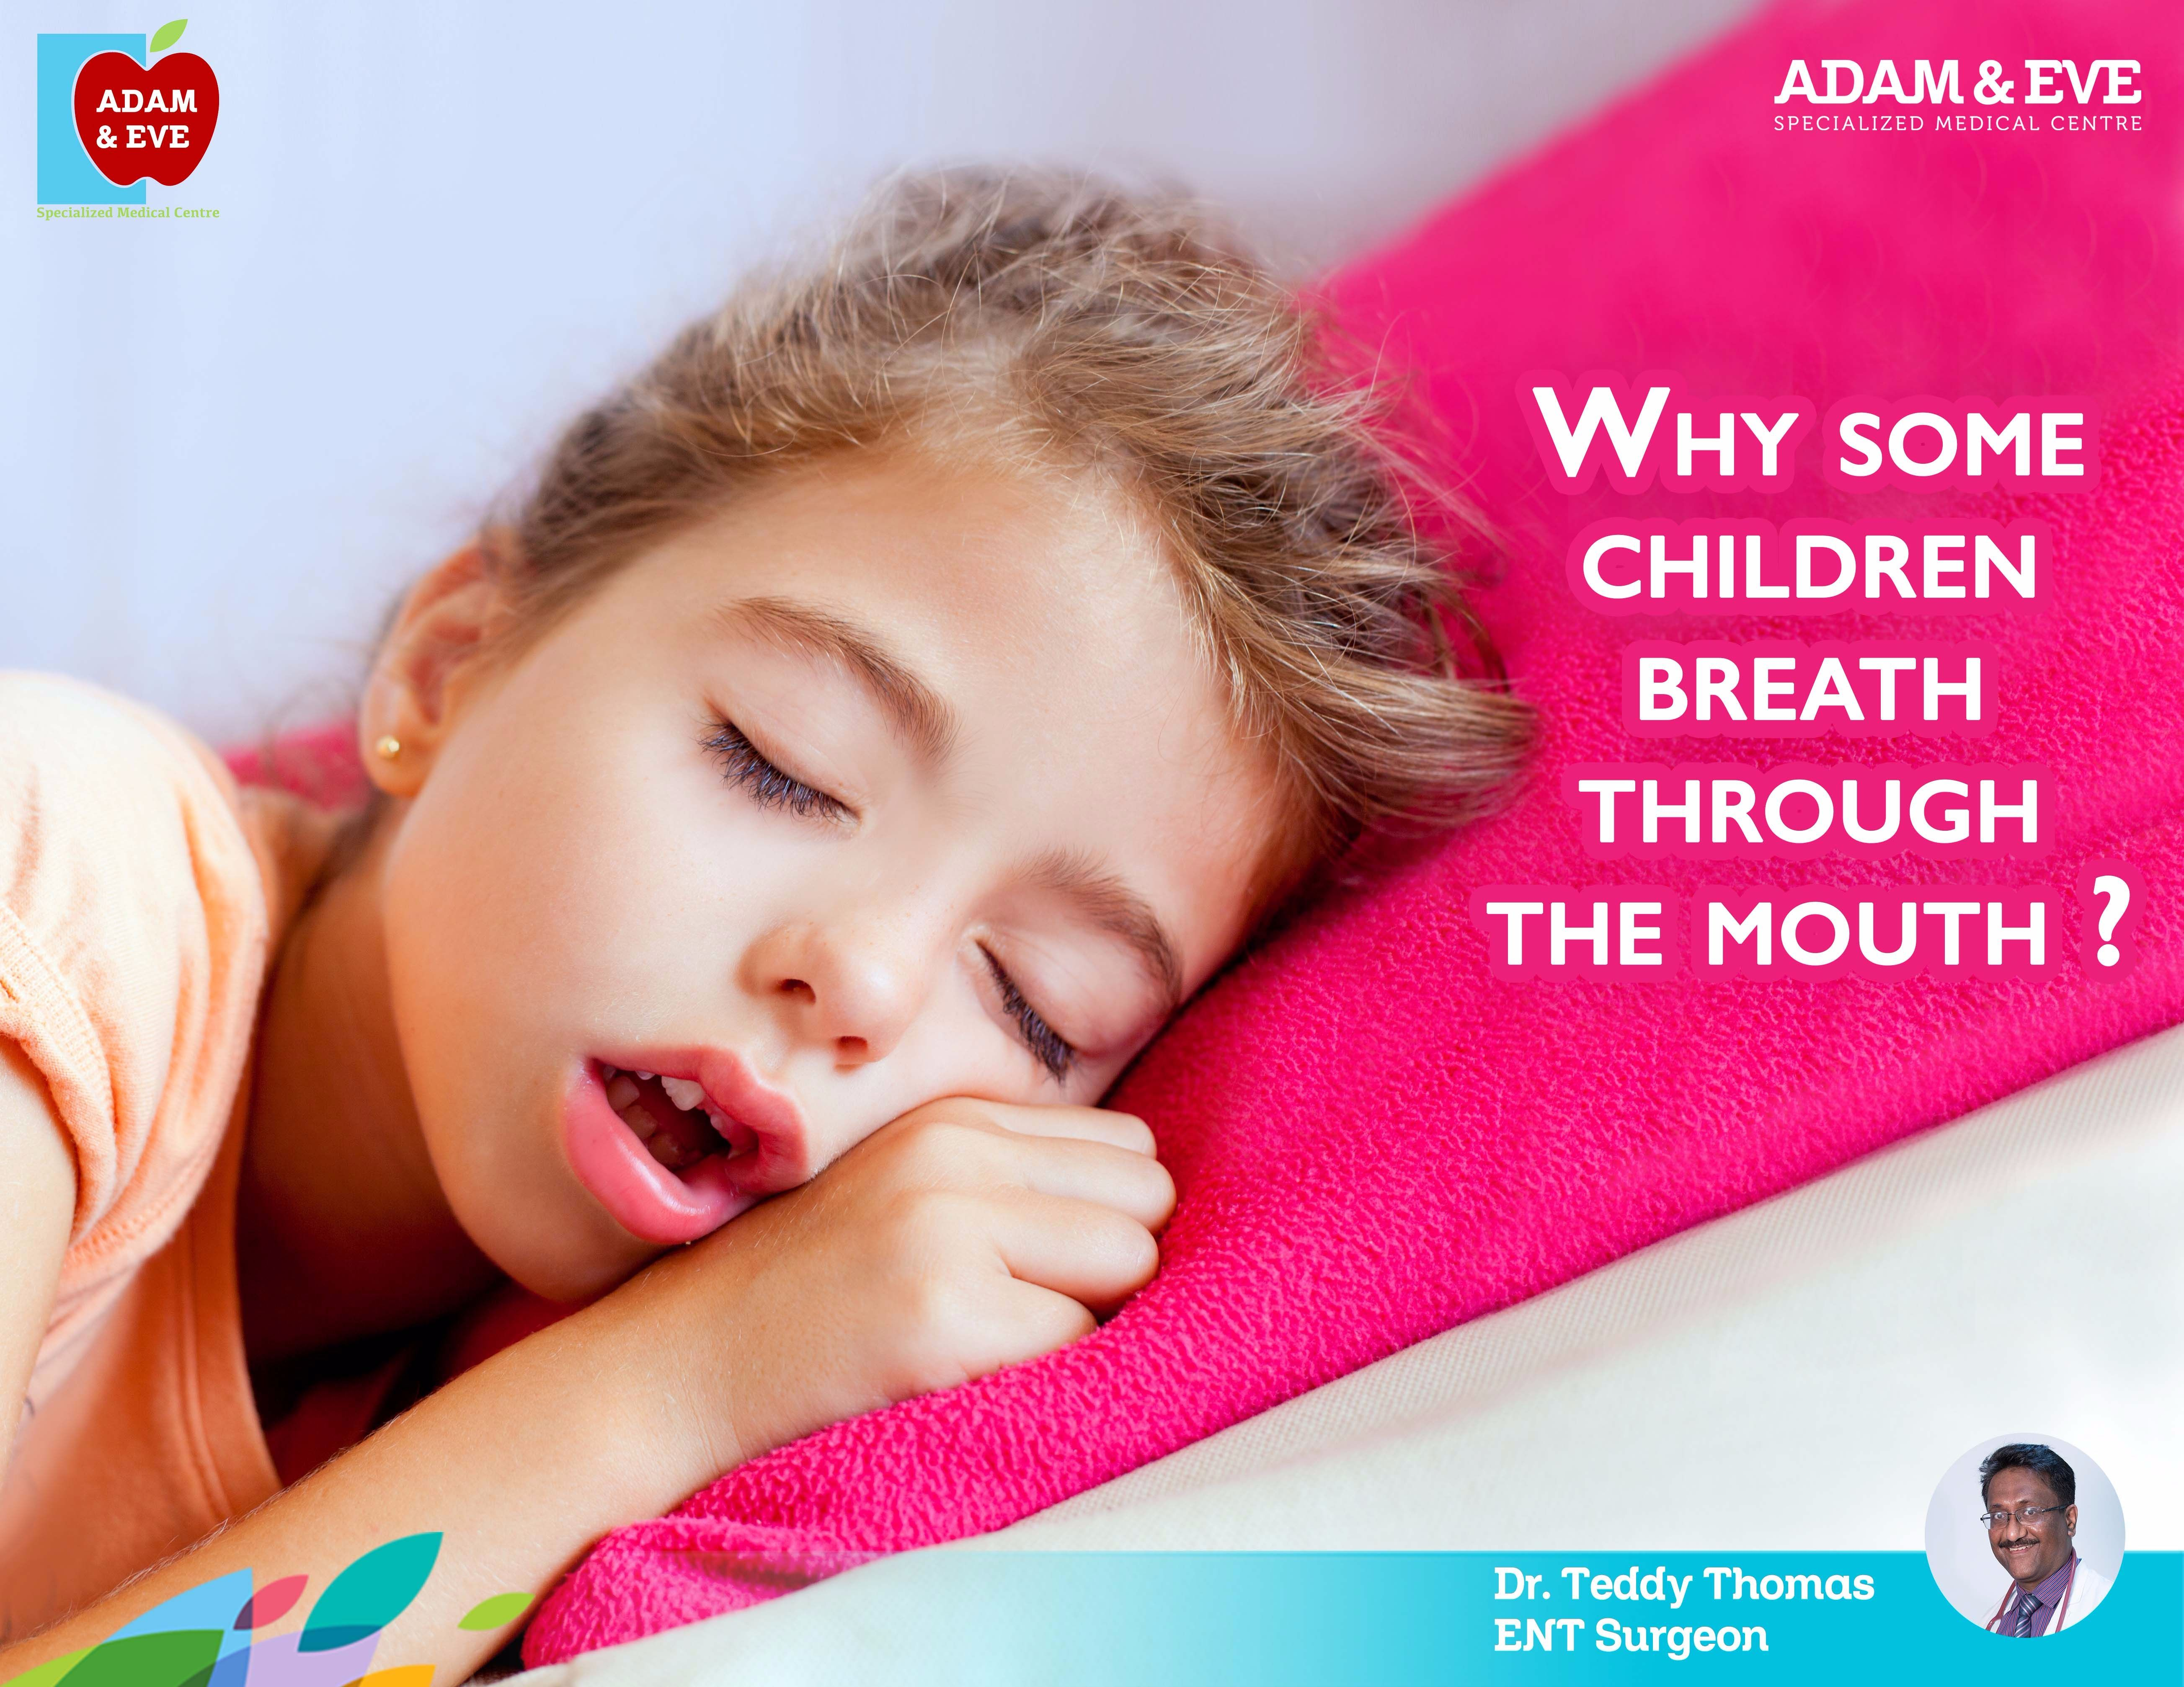 Some children breathe through the mouth, or snore, or have